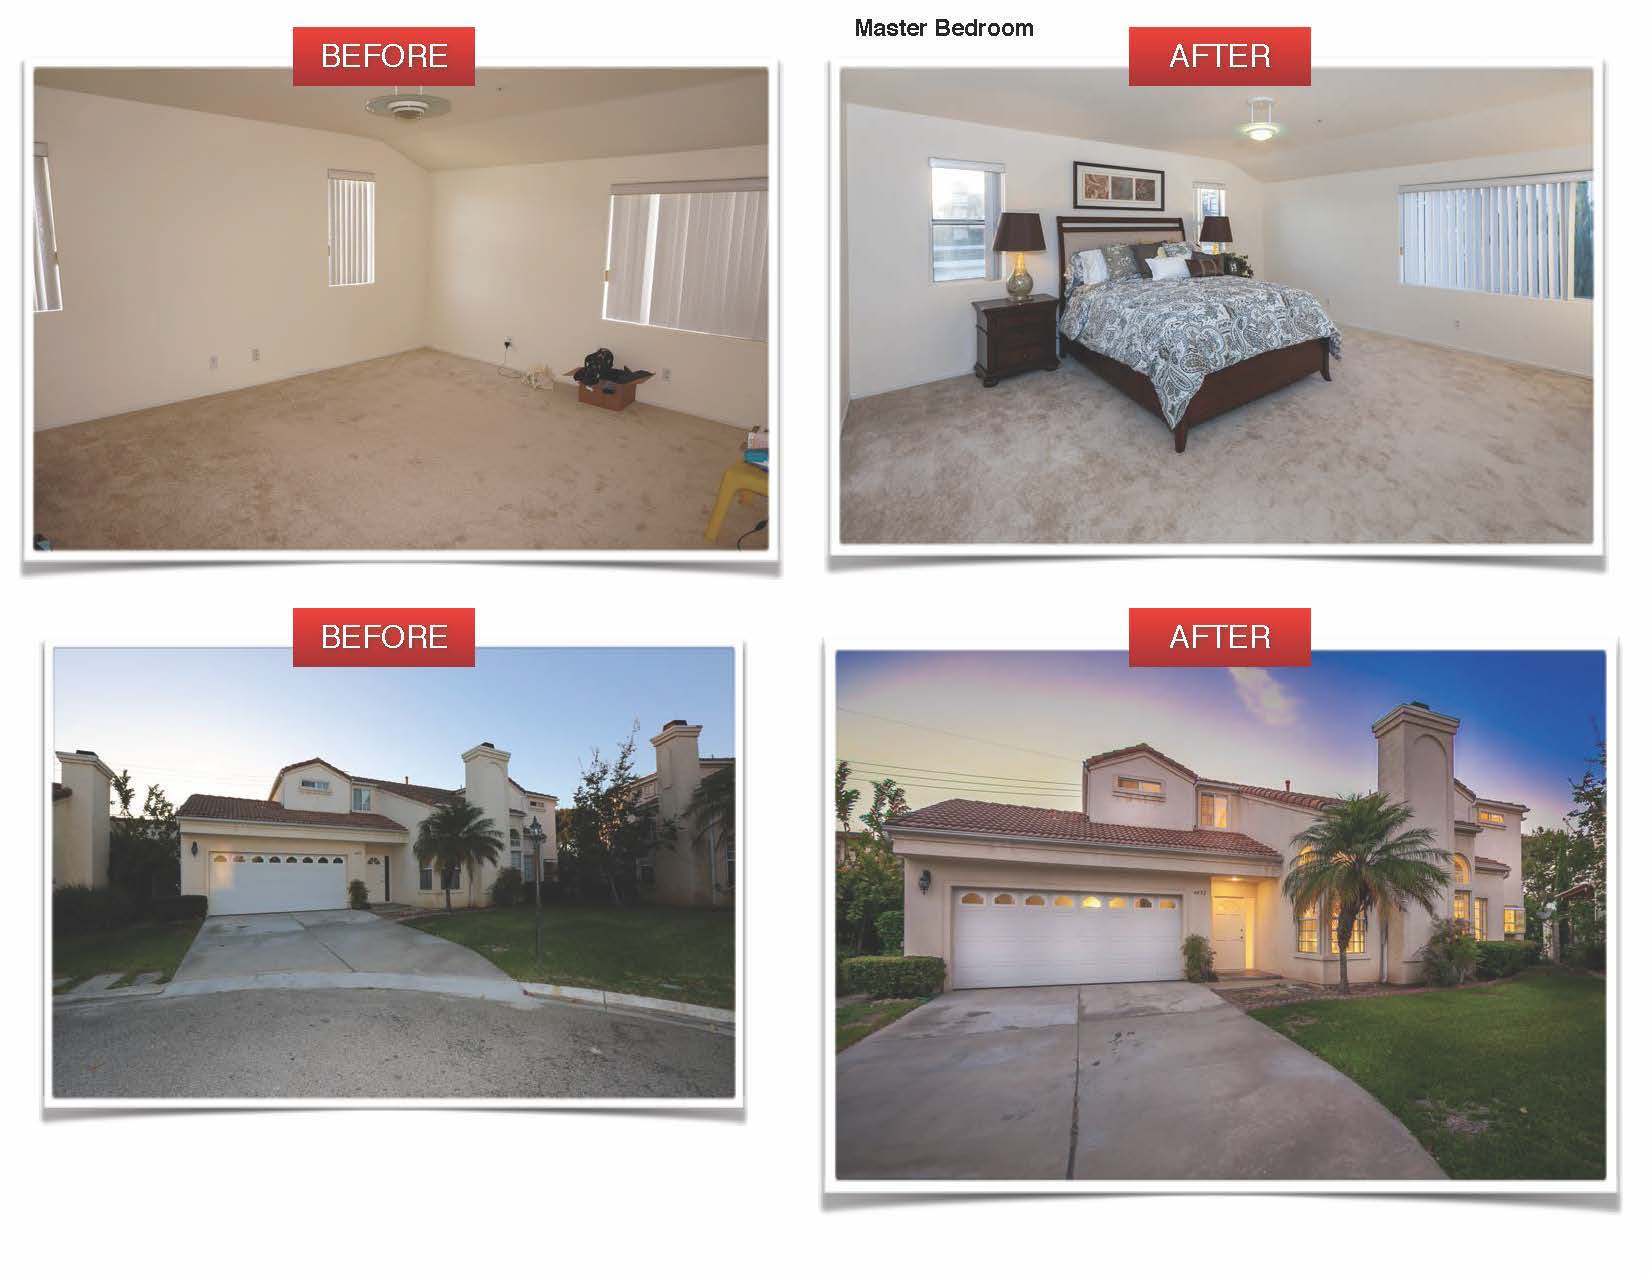 4437 Eileen Lane-before vs. after_Page_4